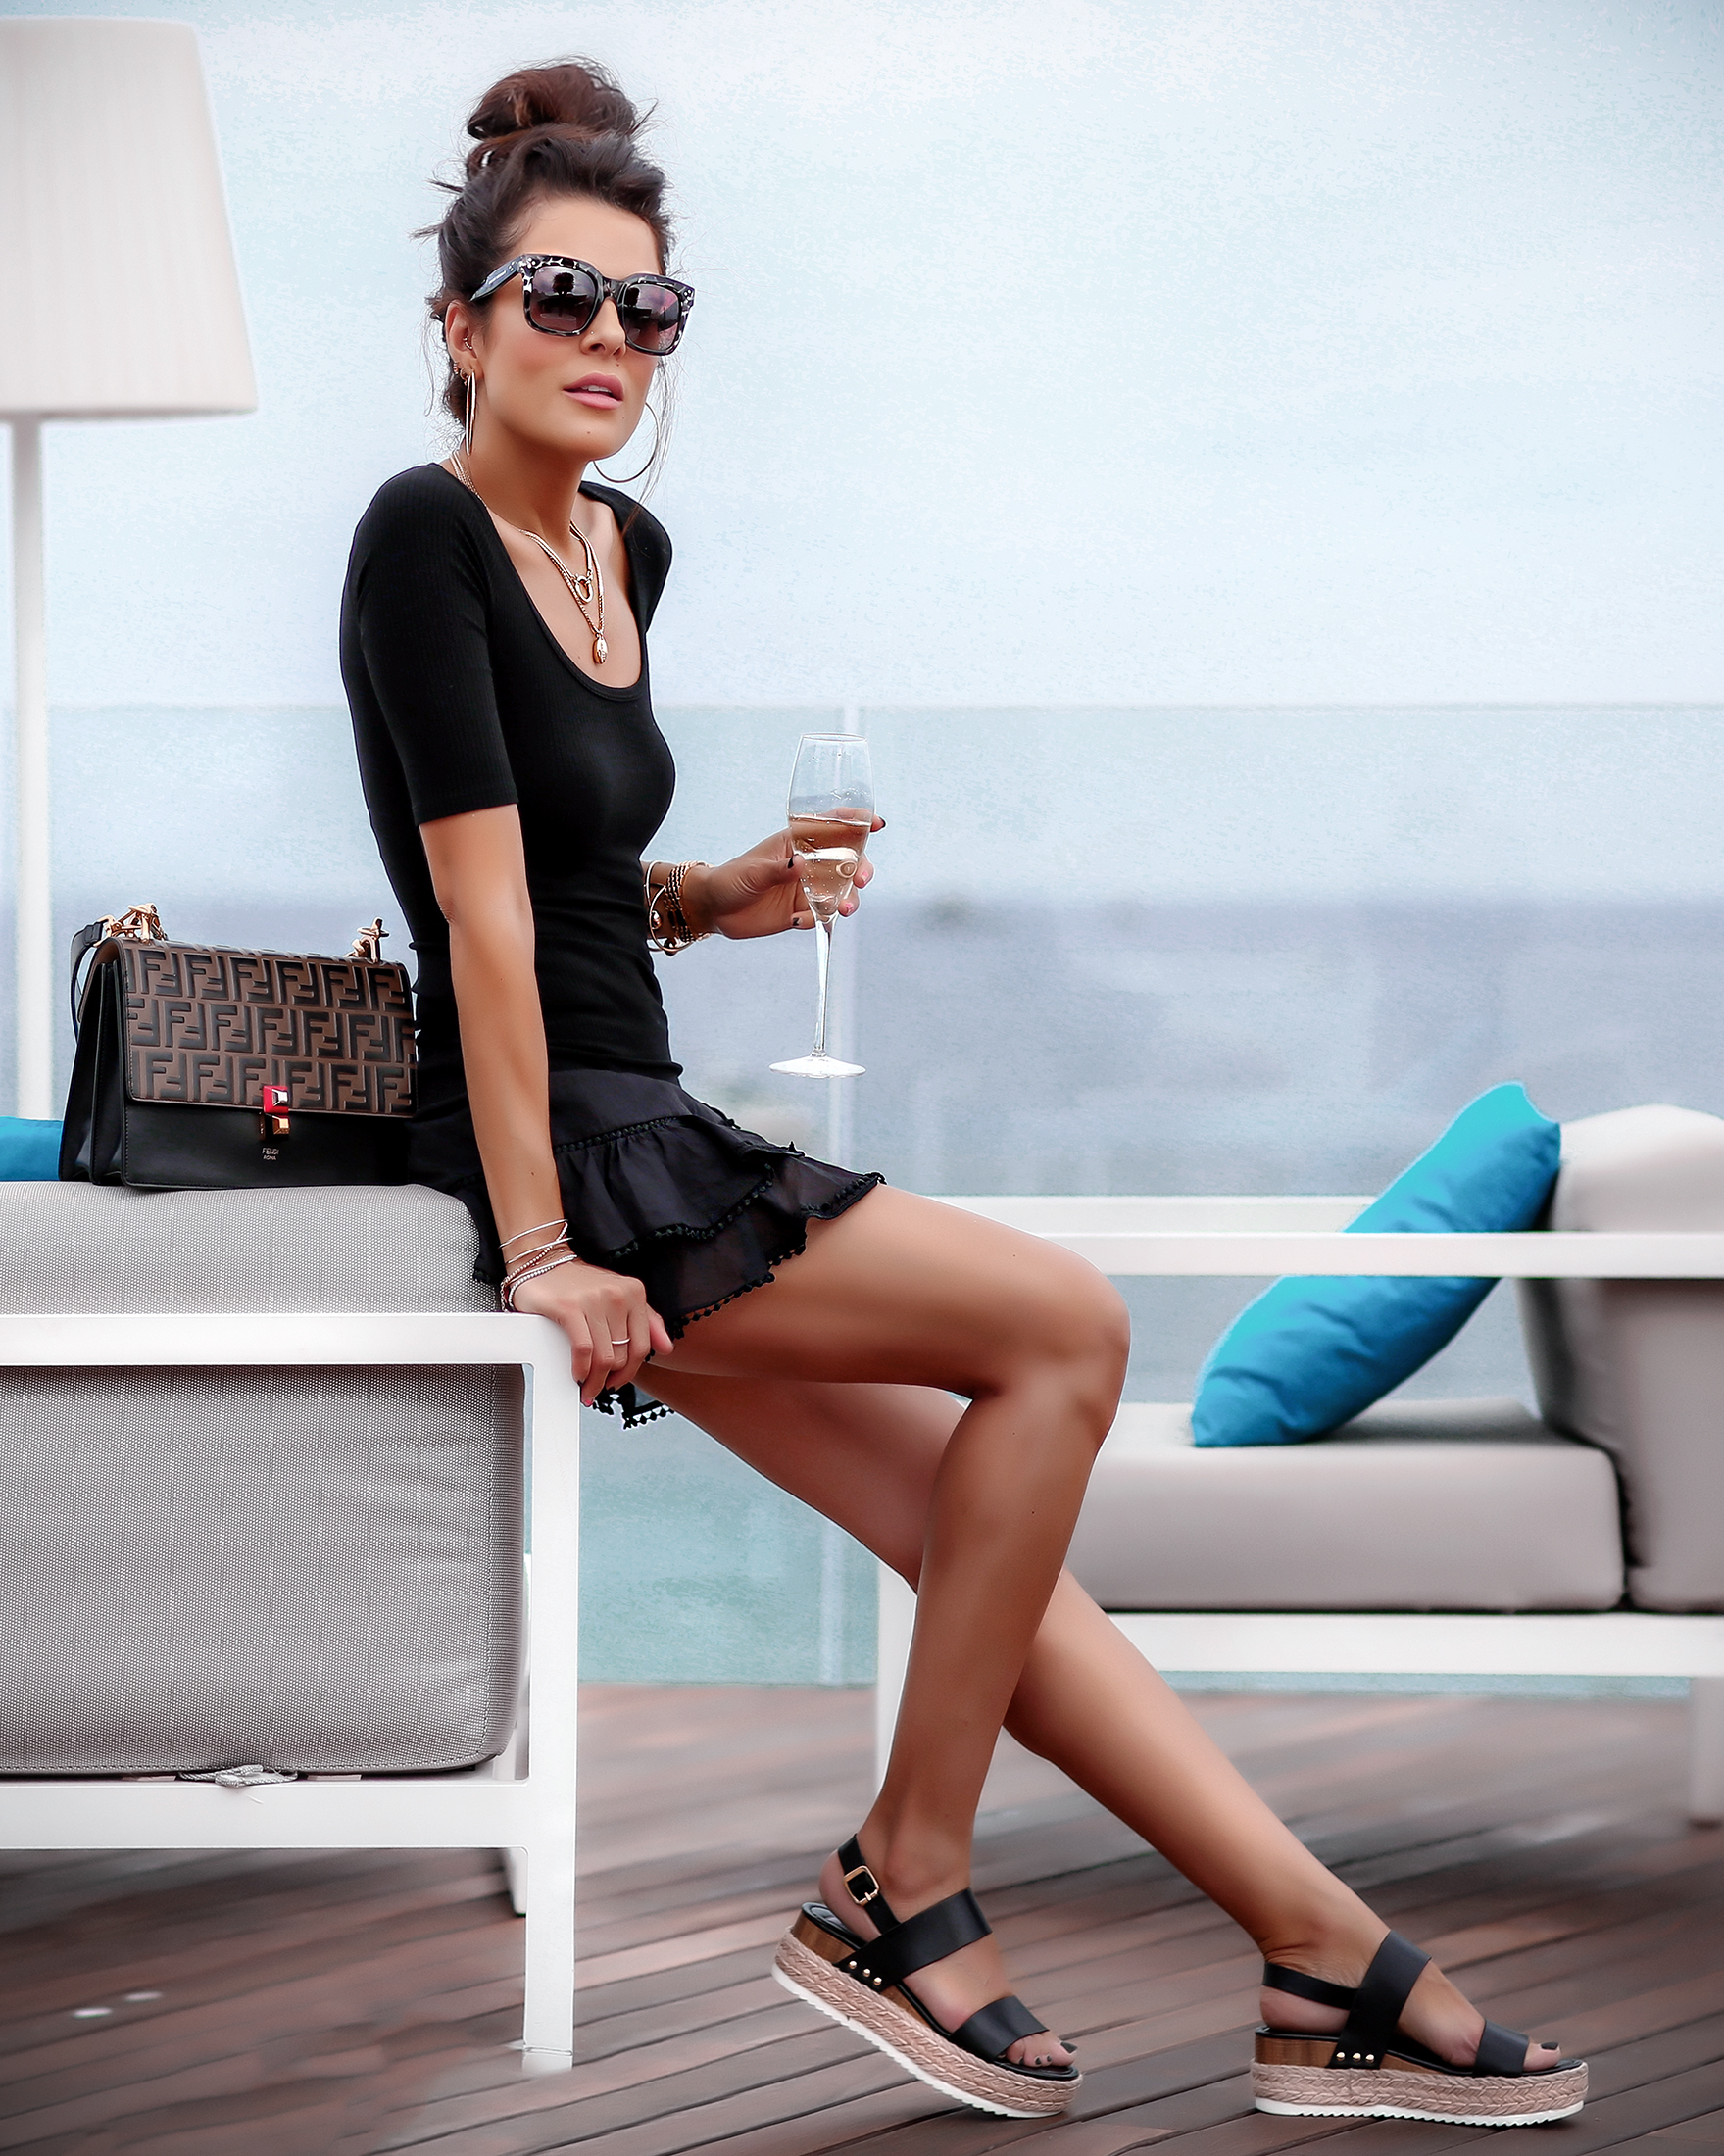 Brunette Woman in All Black and Steve Madden Sandals